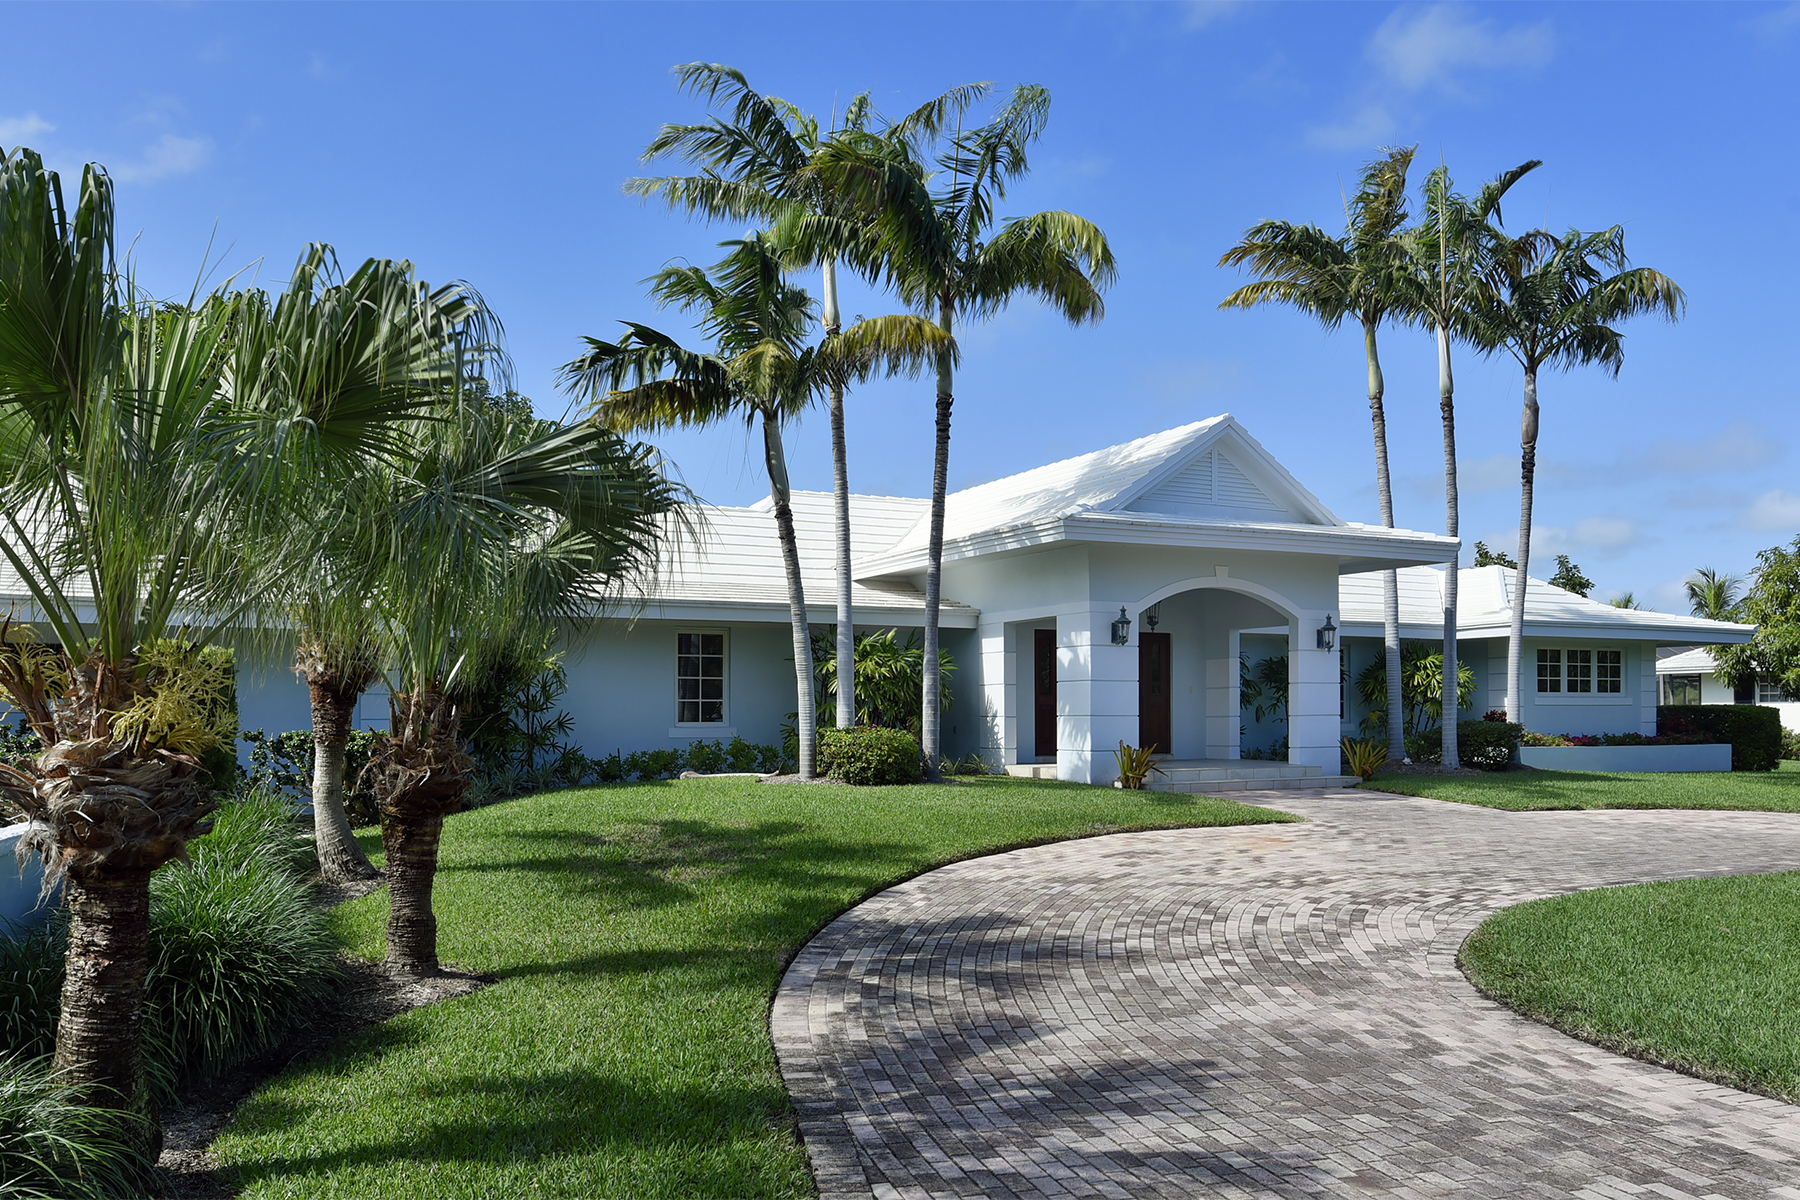 Single Family Home for Sale at Charming Waterfront Home at Ocean Reef 15 Sunset Cay Road Ocean Reef Community, Key Largo, Florida, 33037 United States